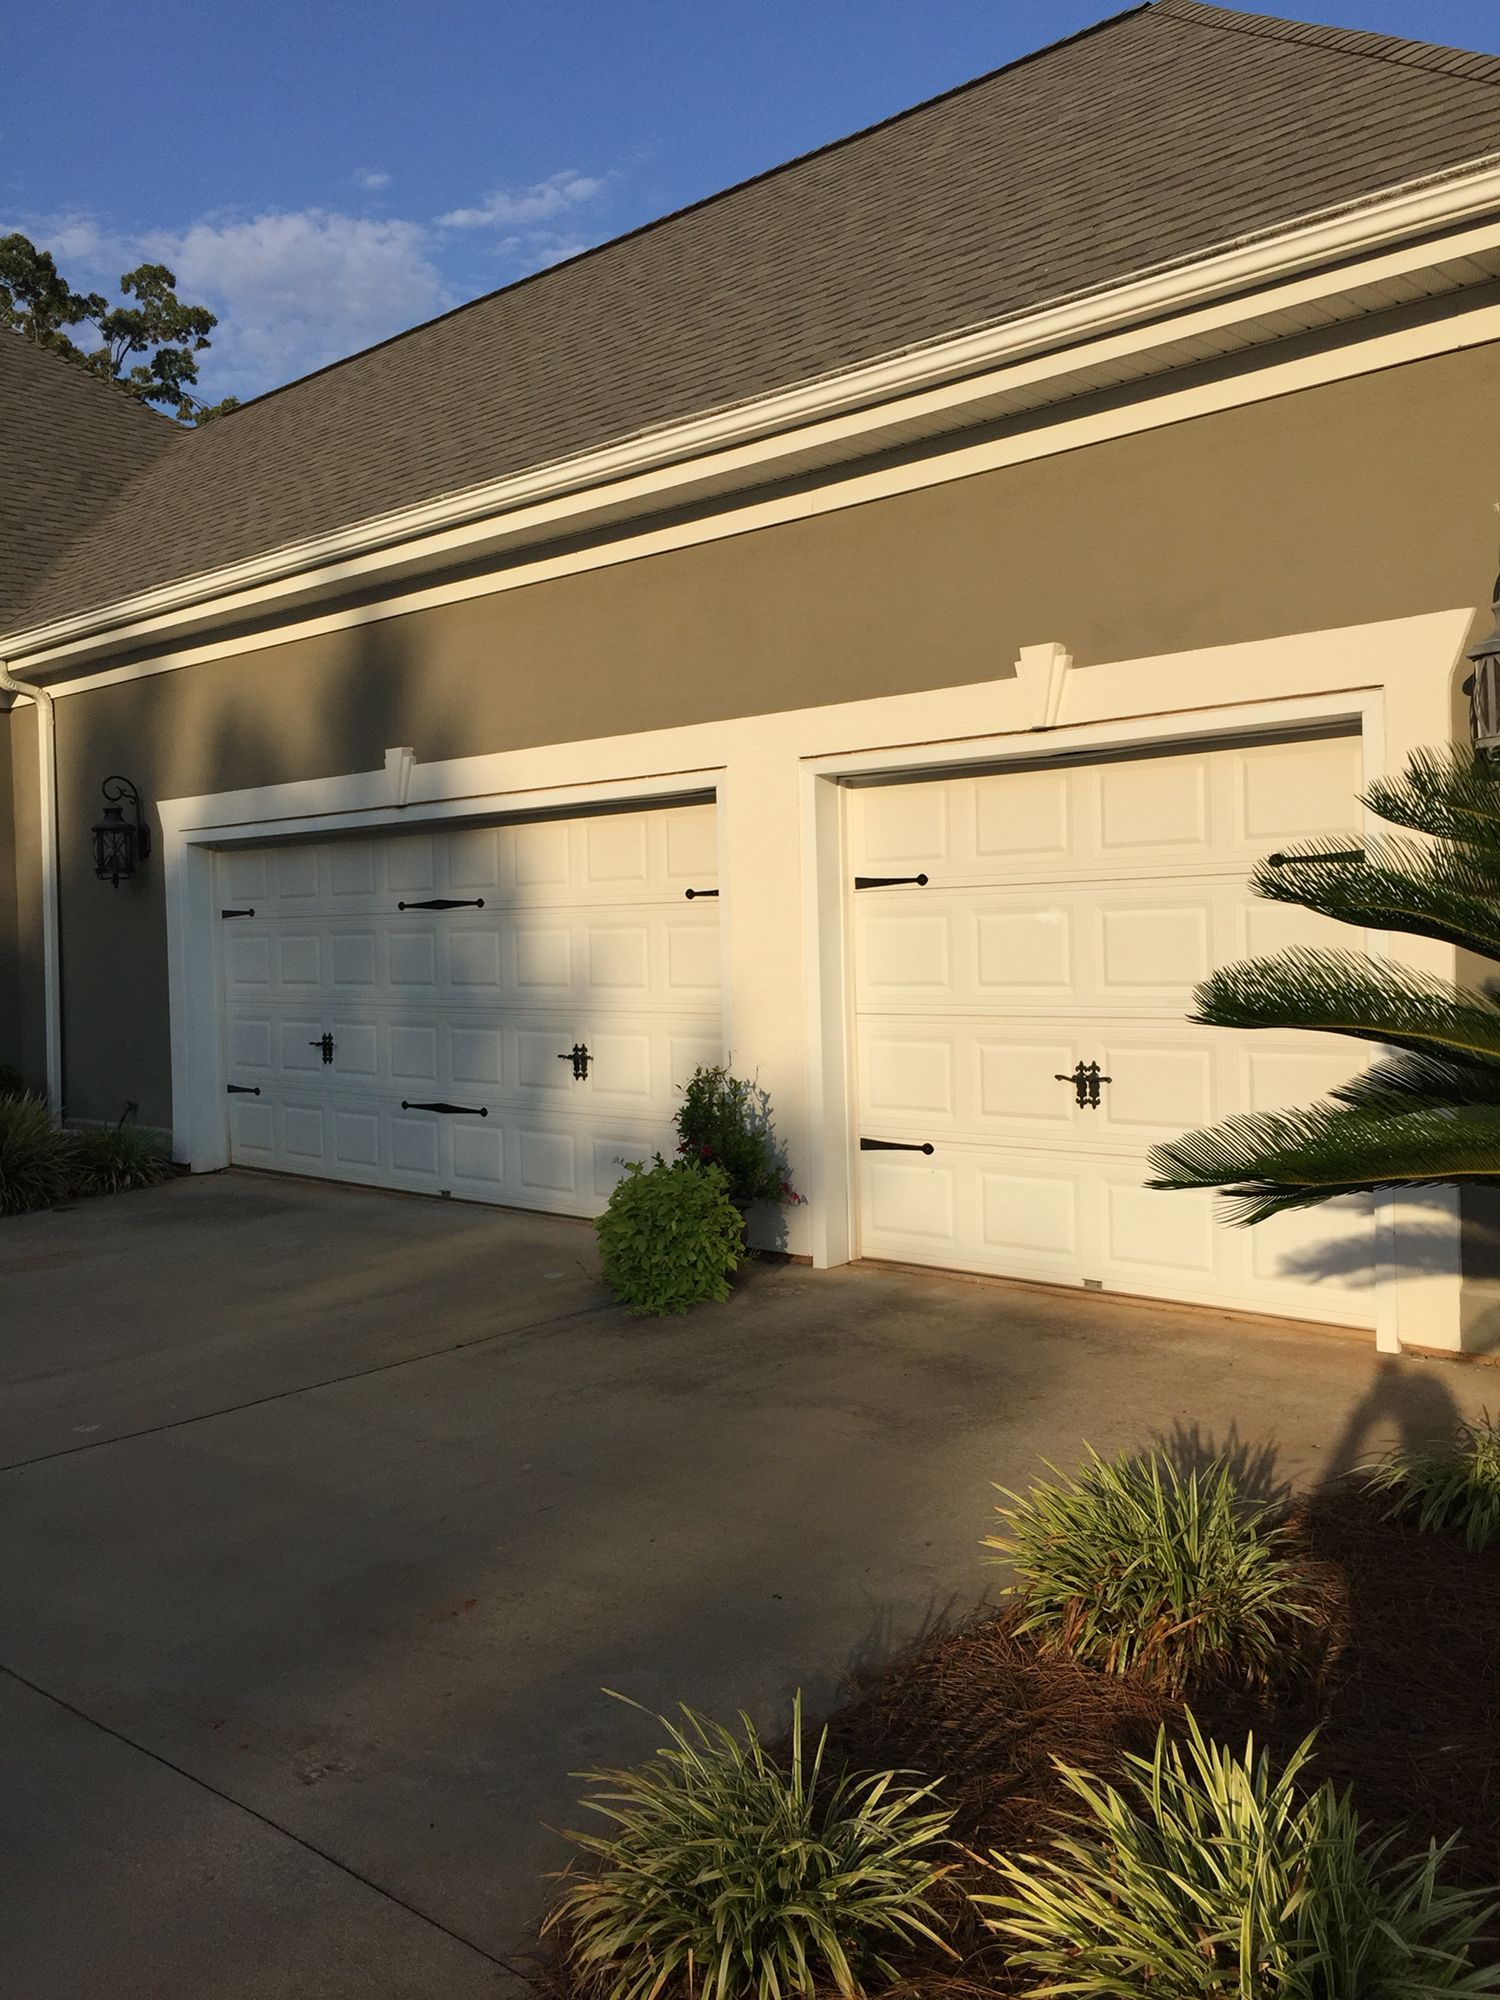 2010 Diy Update Added Iron Hardware On Plain Garage Doors 1 Double 1 Single To Give A Tuscan Vi Garage Doors Garage Door Makeover Double Garage Door